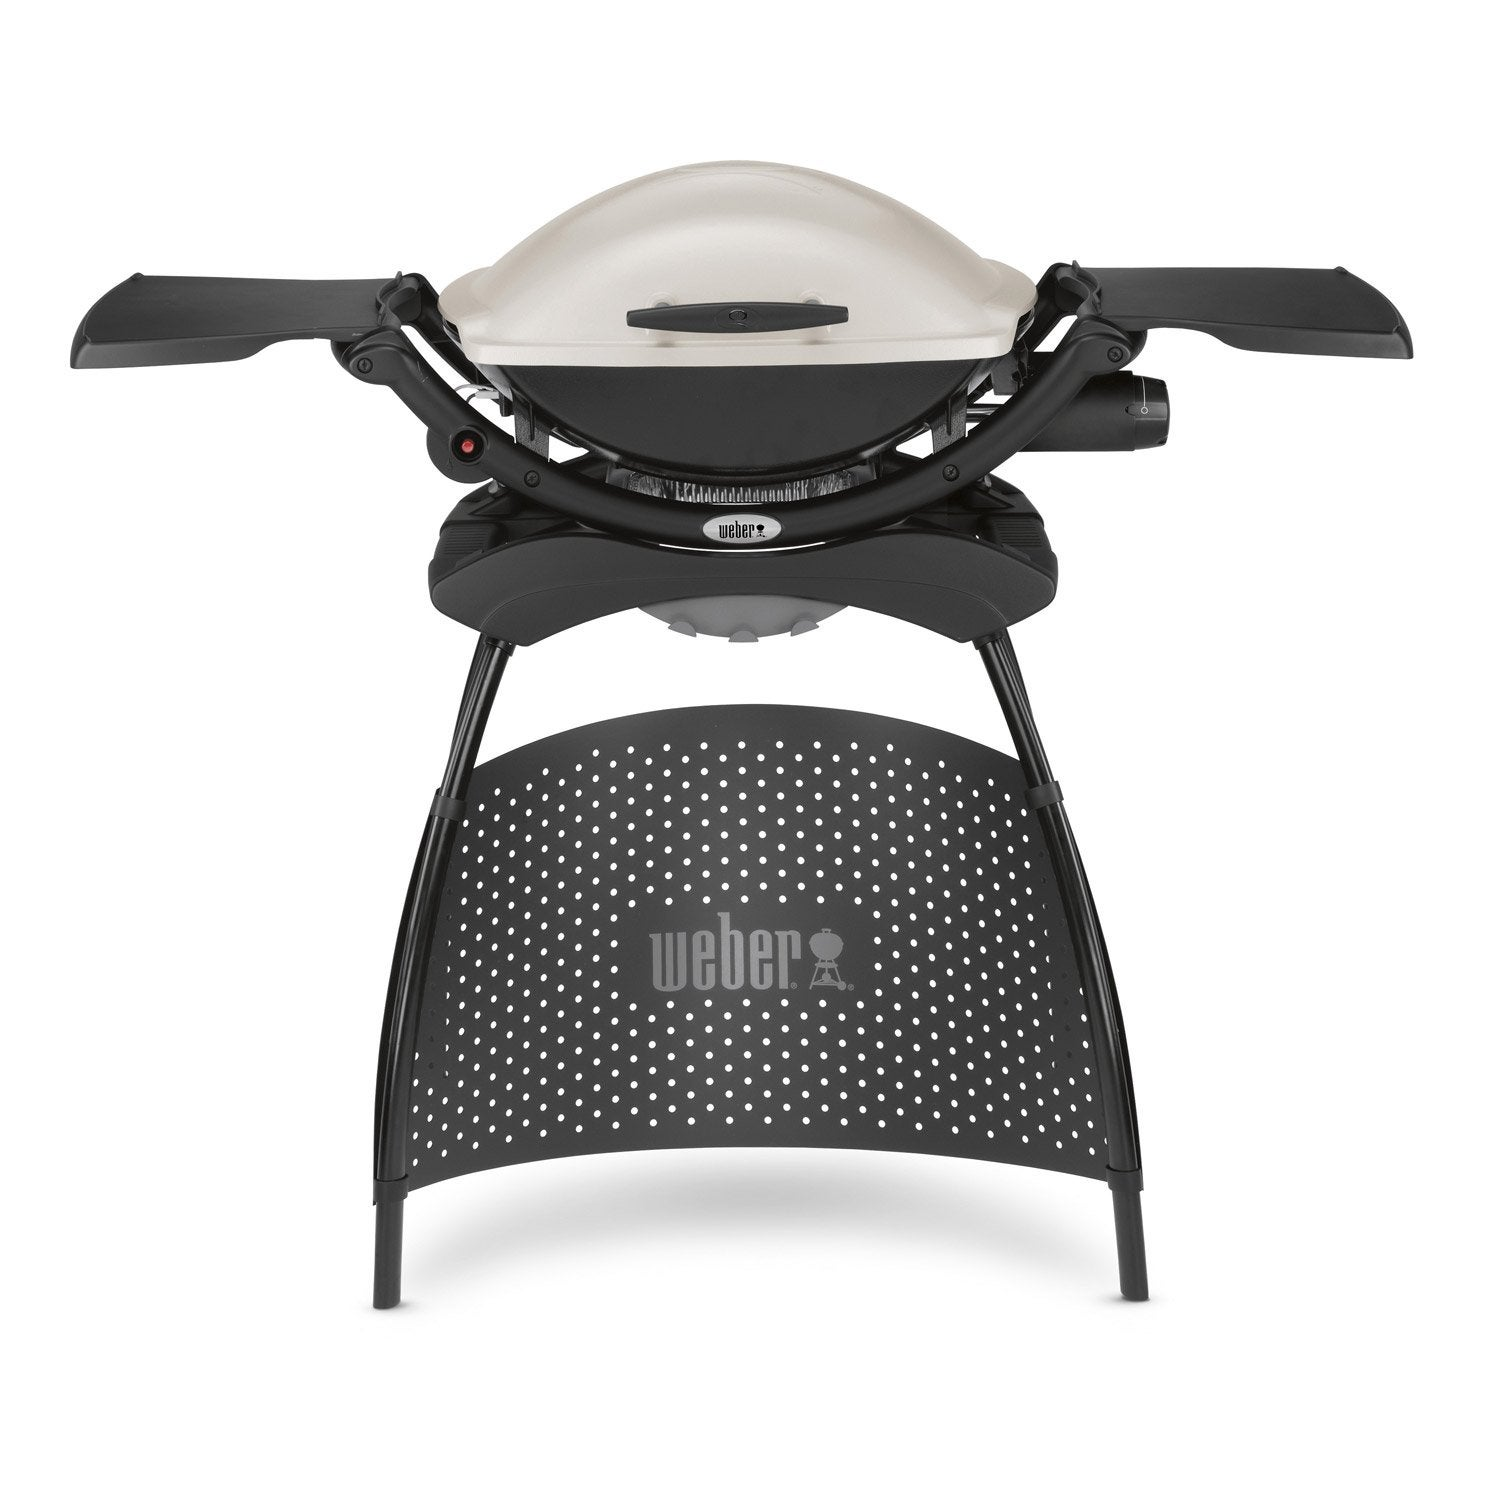 Barbecue weber leroy merlin - Barbecue weber charbon leroy merlin ...